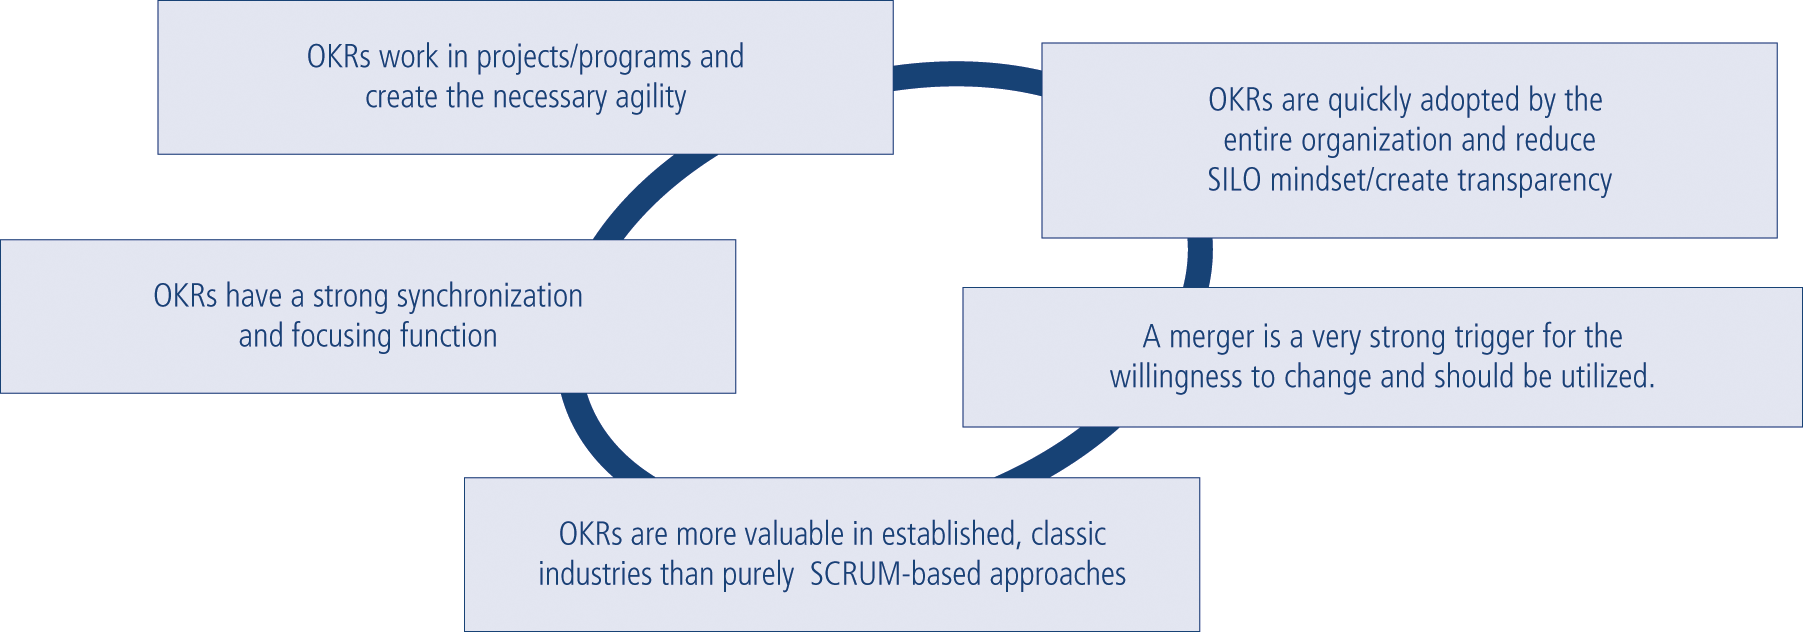 Fig. 5: OKRs as a (program) management tool. The most important findings